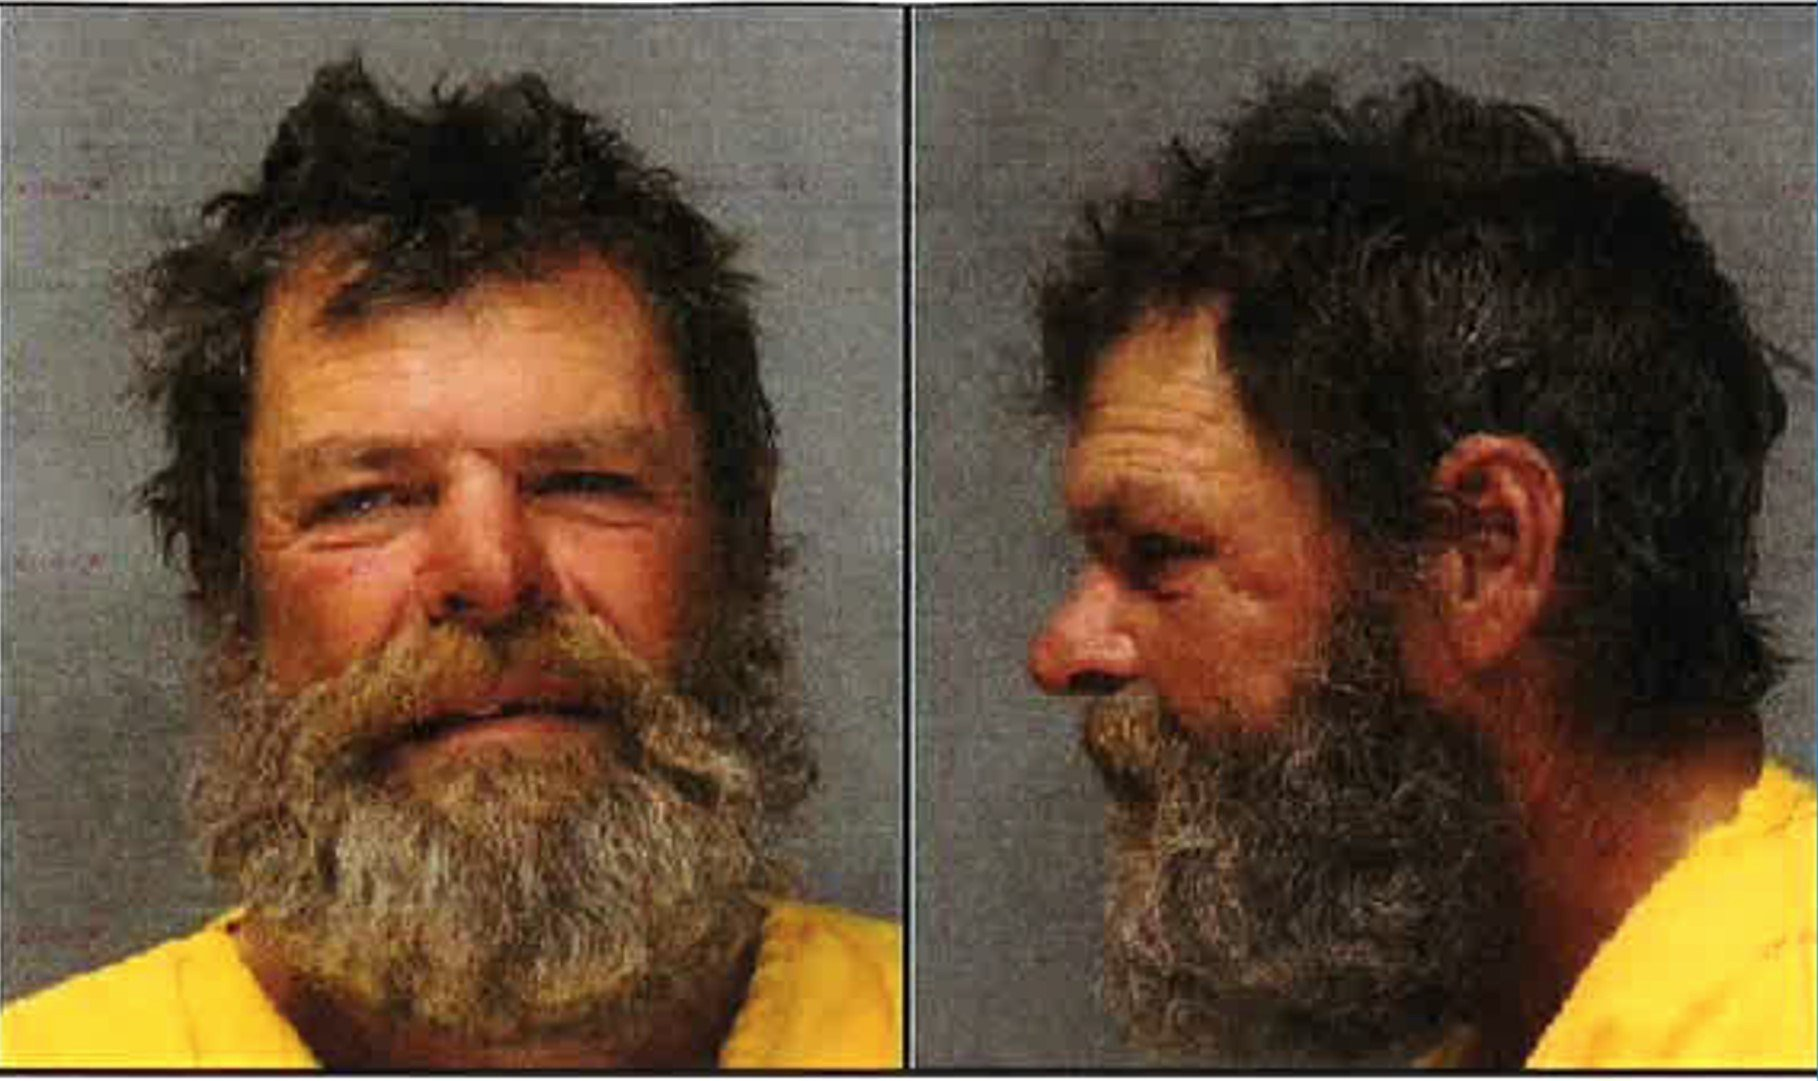 Police and fire investigators arrested 56-year-old Donald Hayward for several recent fires.